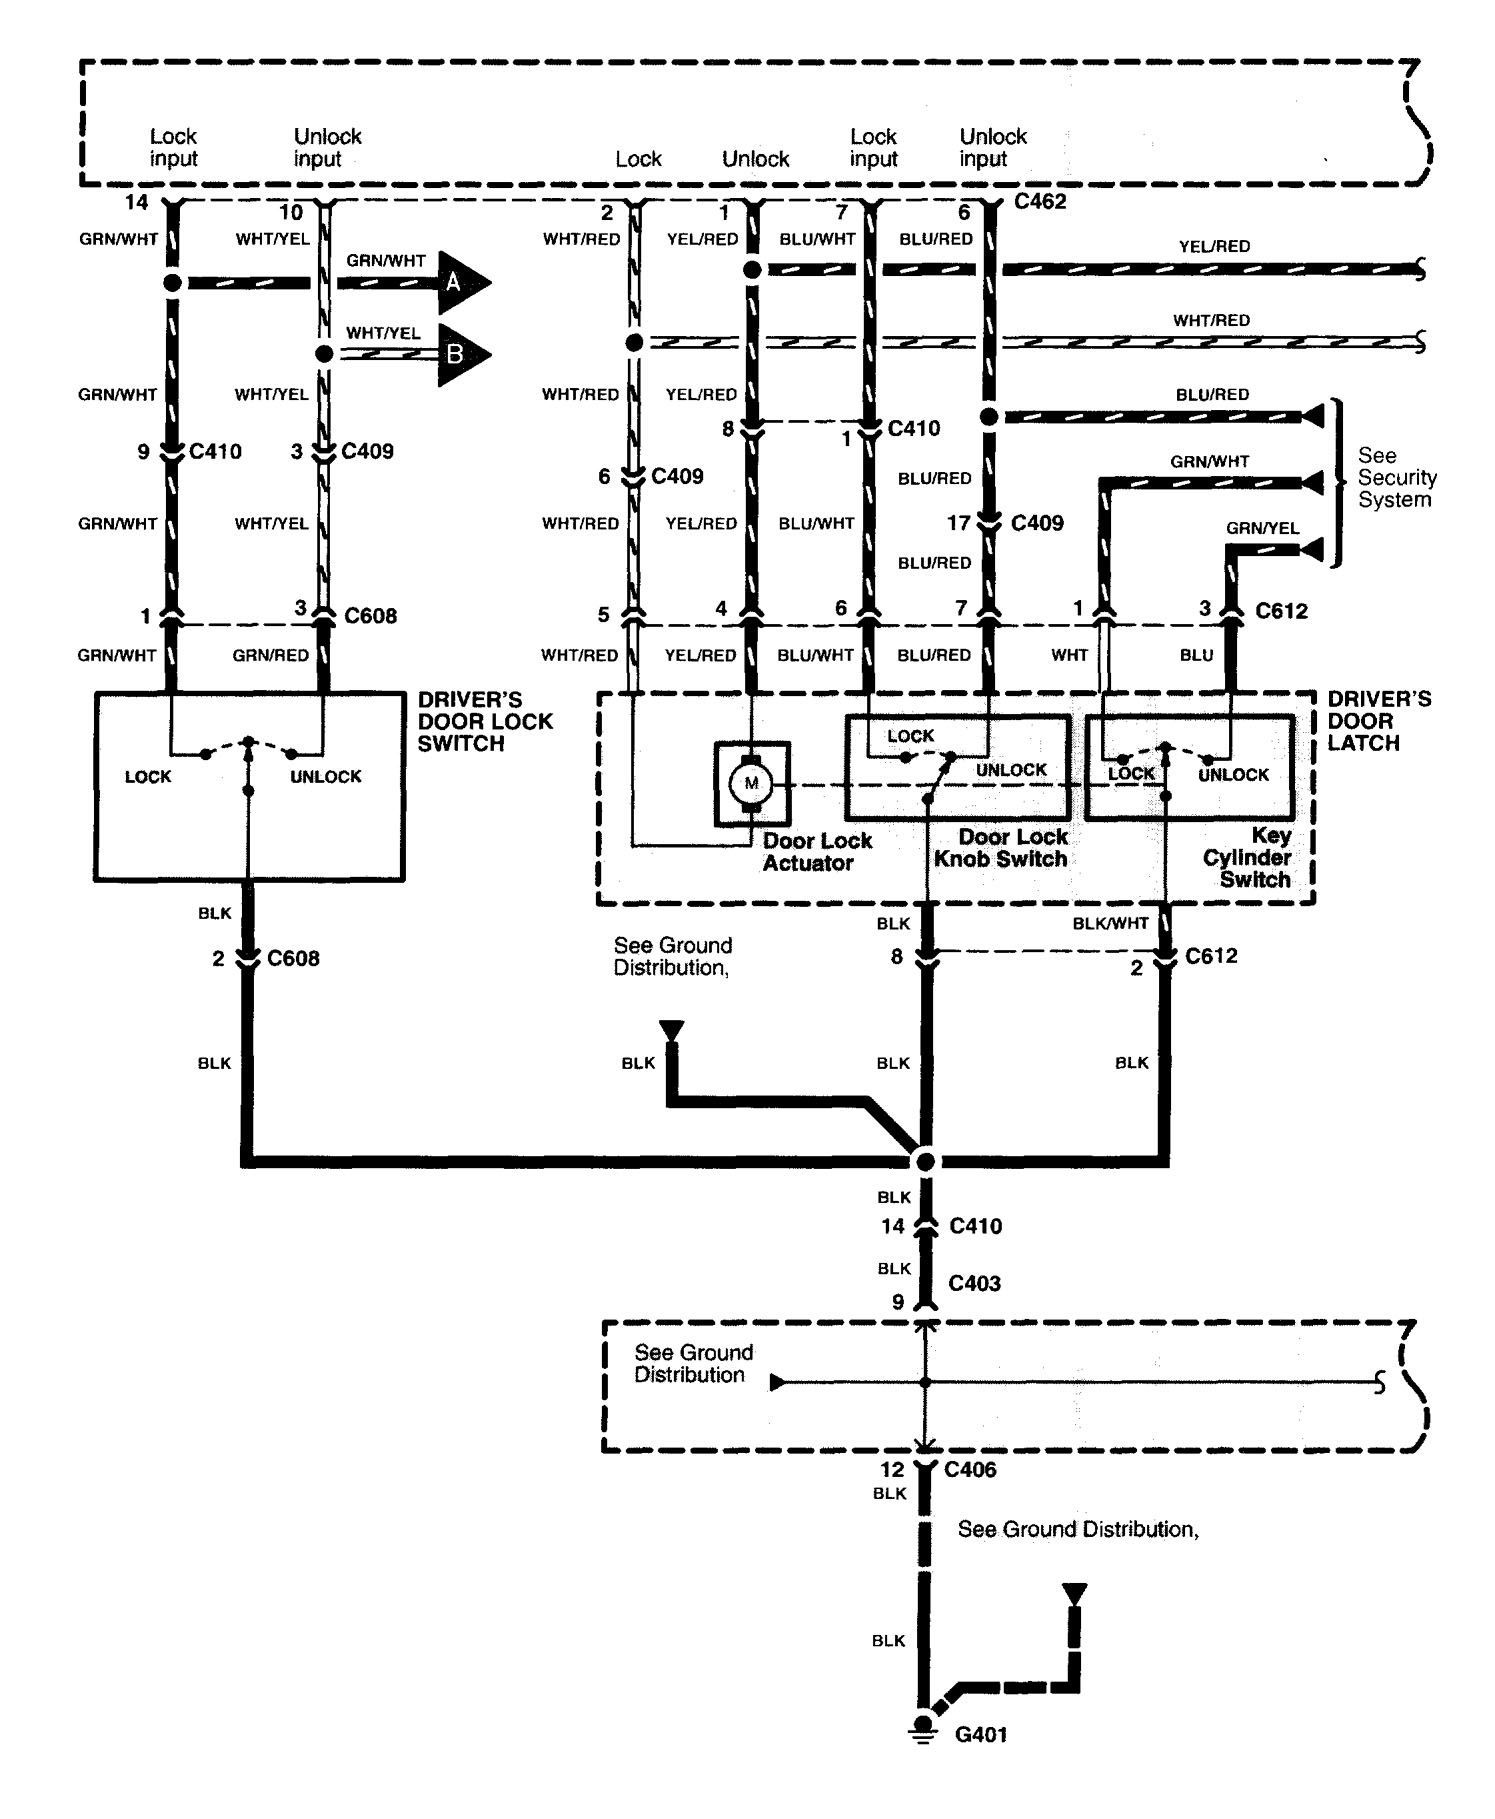 ZY_5796] Acura Wire Diagram Download DiagramWww Mohammedshrine Librar Wiring 101